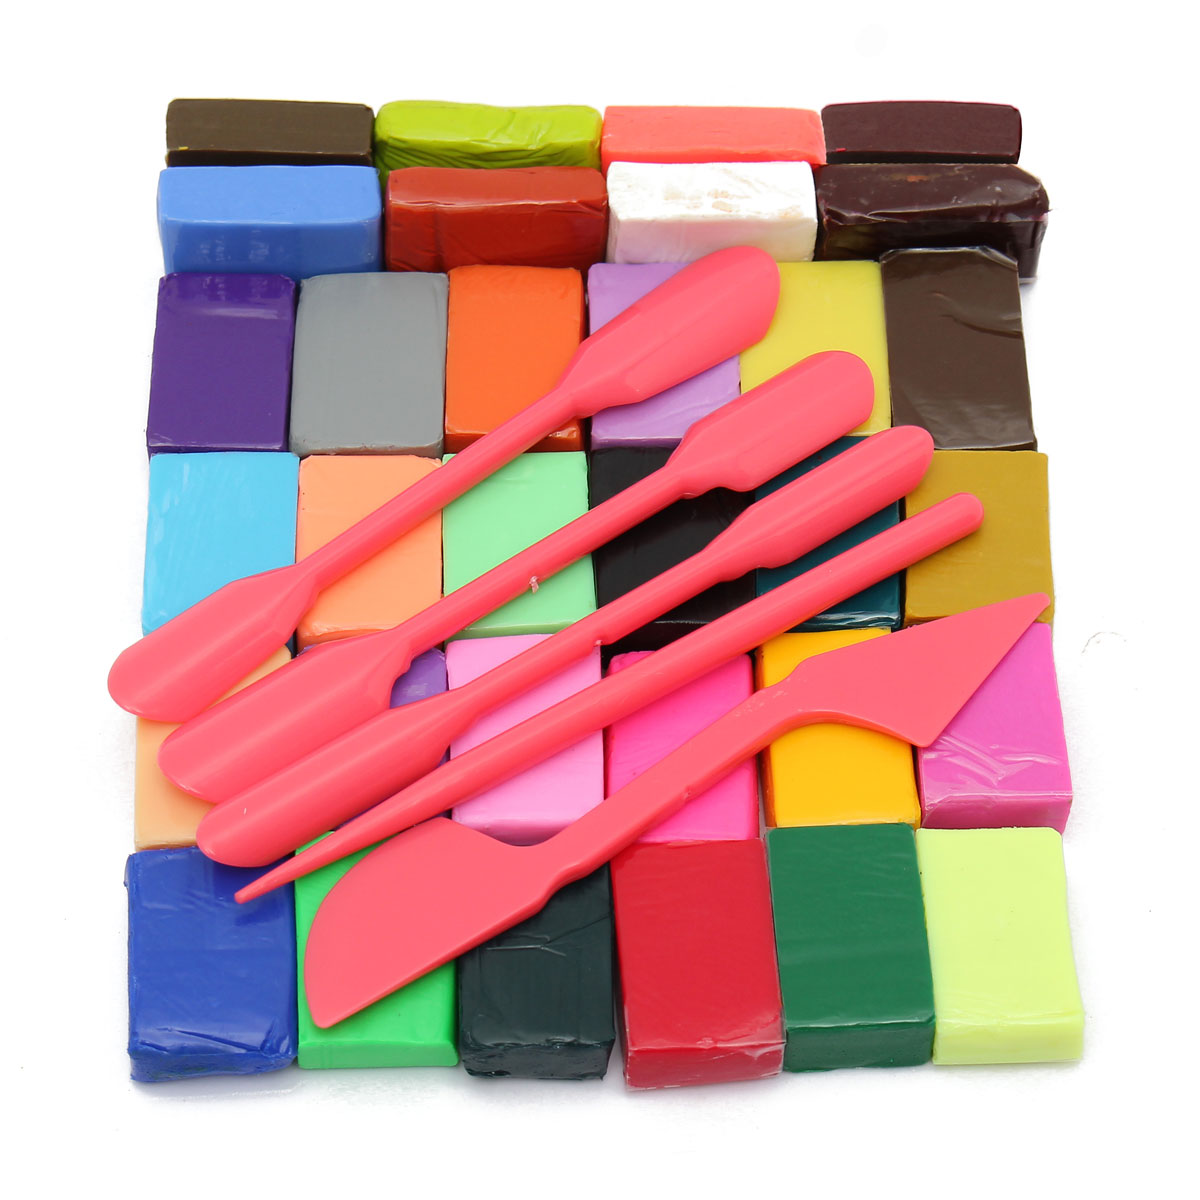 Wholesale 32 Color Oven Bake Polymer Clay Block Modelling Moulding Sculpey 5DIY Tool Hand Making Education Toy Children Favorite(China (Mainland))